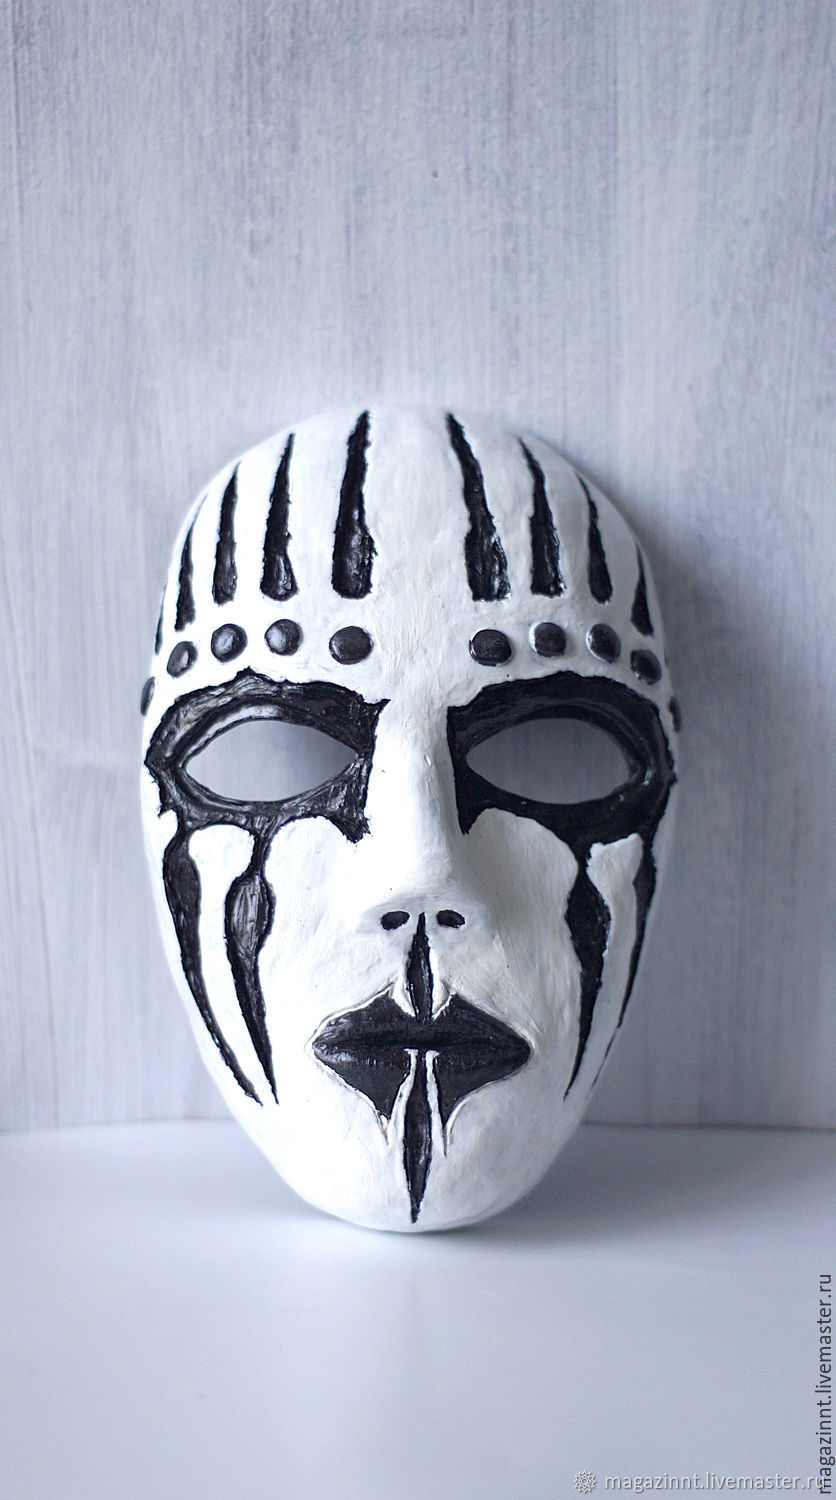 Joey Jordison mask new band drummer mask Hard Rock Slipknot masks – shop  online on Livemaster with shipping - CVLUTCOM | Moscow